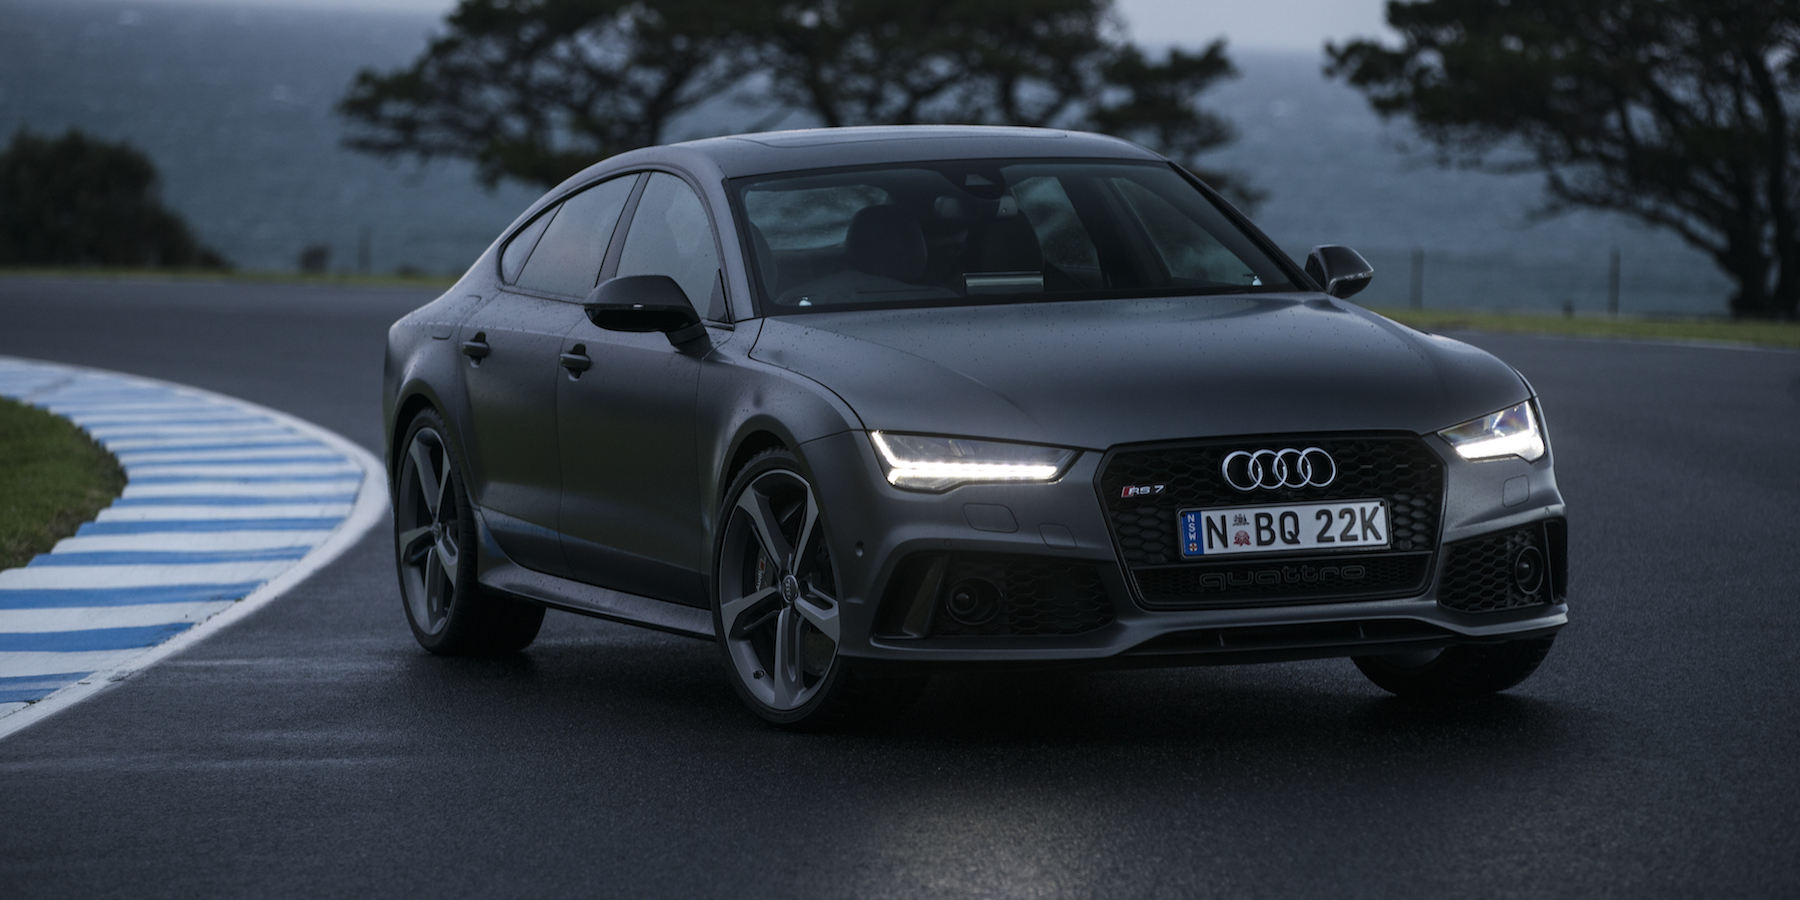 2015 Audi Rs7 Sportback Review Photos Caradvice